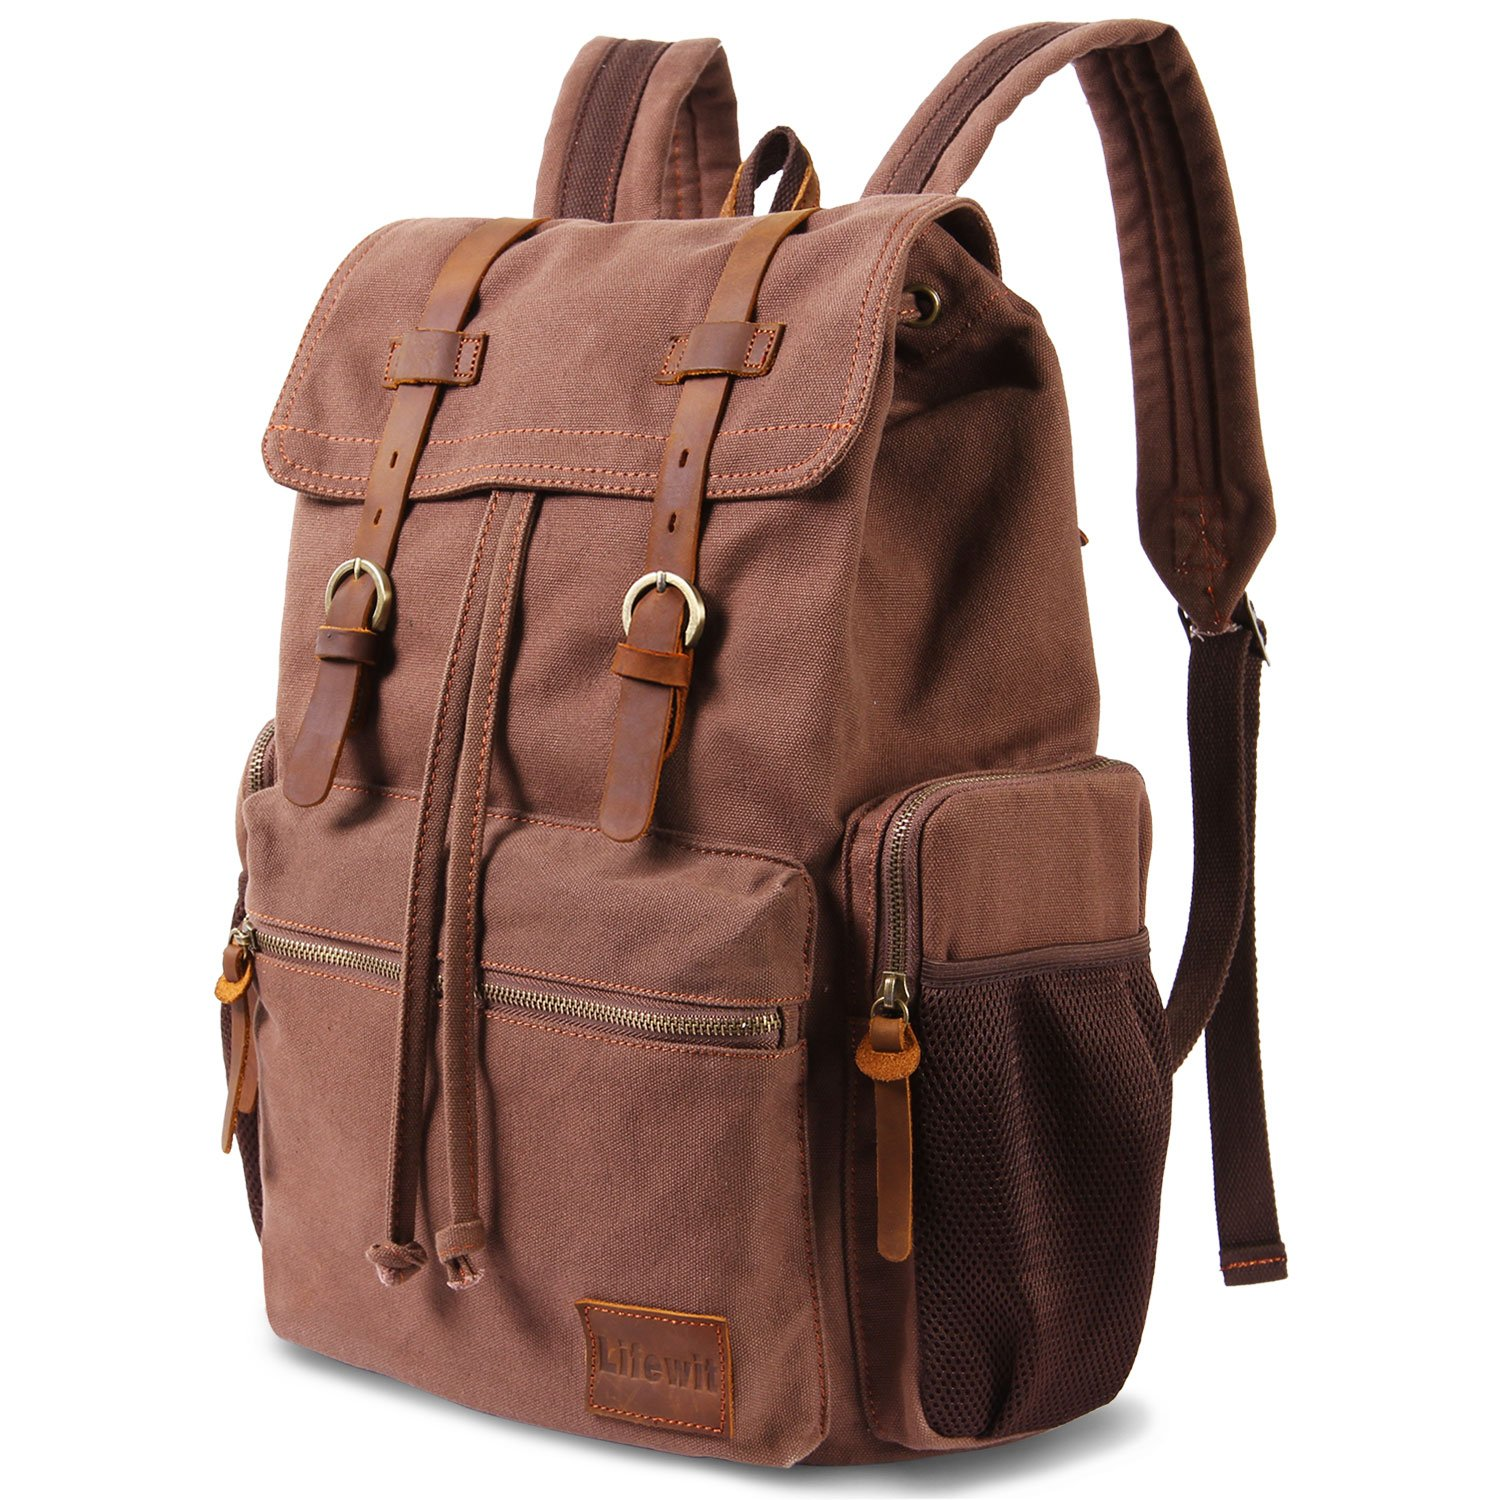 6033d7f46 Amazon.com: Lifewit 17 Inch Canvas Laptop Backpack - Unisex Vintage Leather,  Casual School College Bags, Hiking, Travel Rucksack & Business Daypack  (Coffee ...